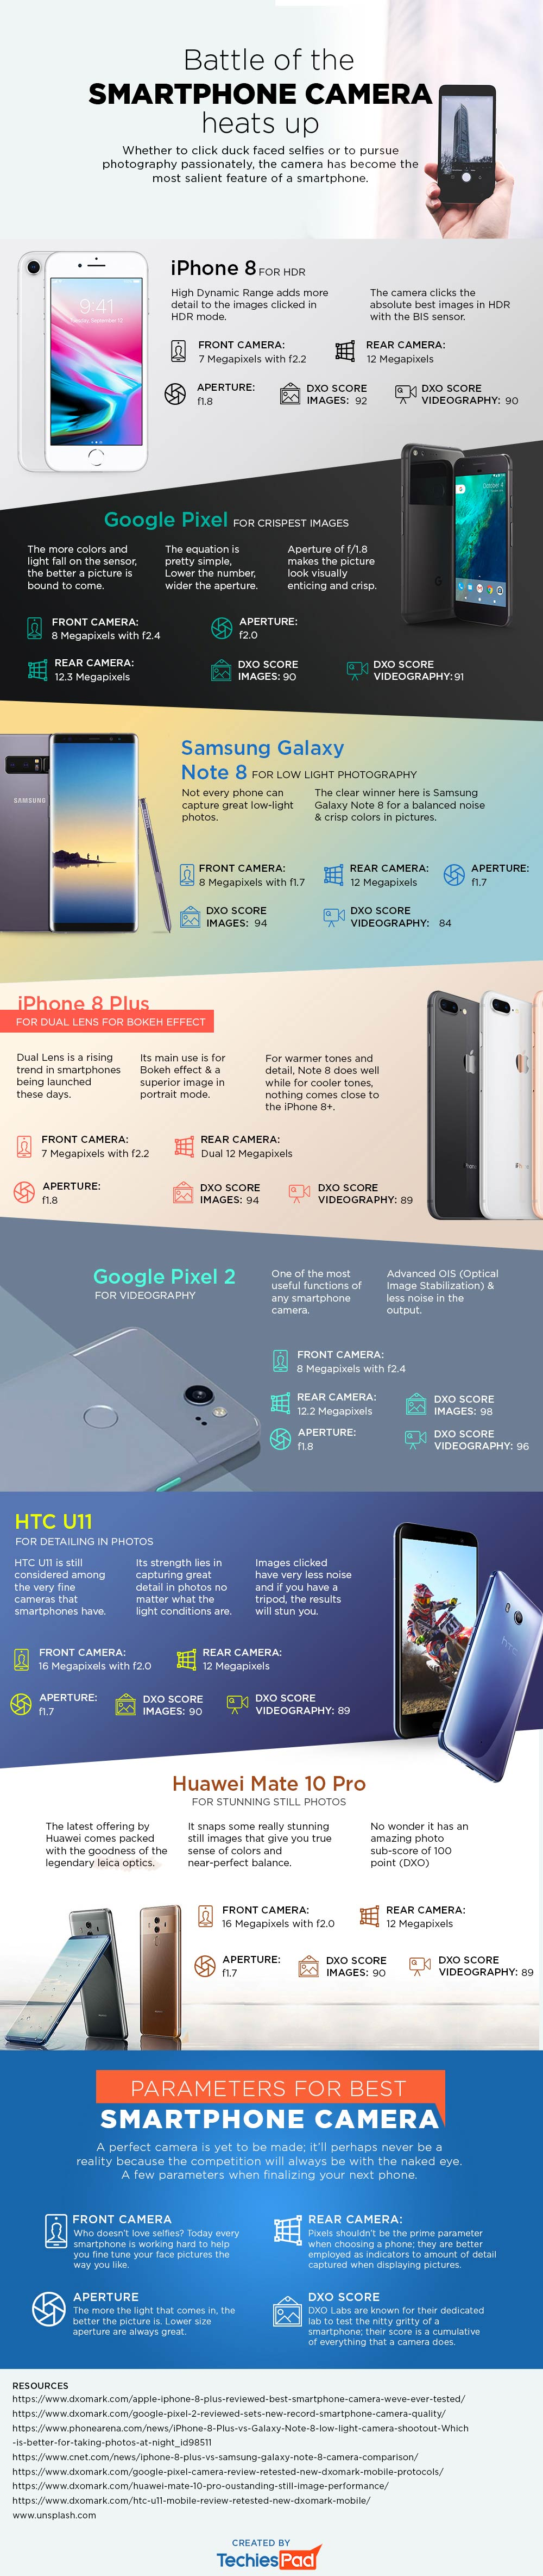 Battle-of-the-Smartphone-Camera-Heats-Up-[Infographic]2